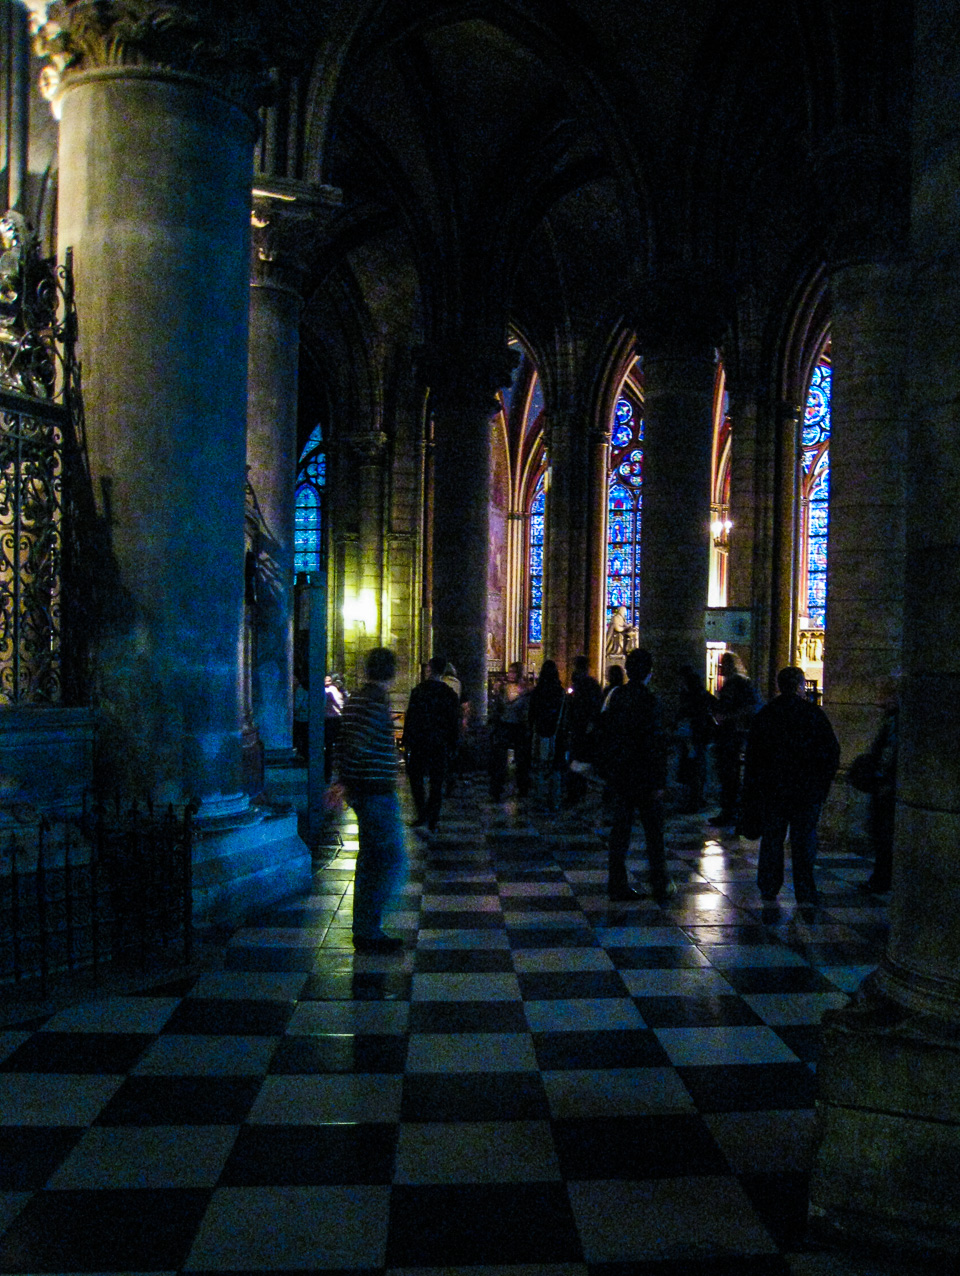 http://travelpast50.com/notre-dame-cathedral-paris-france/